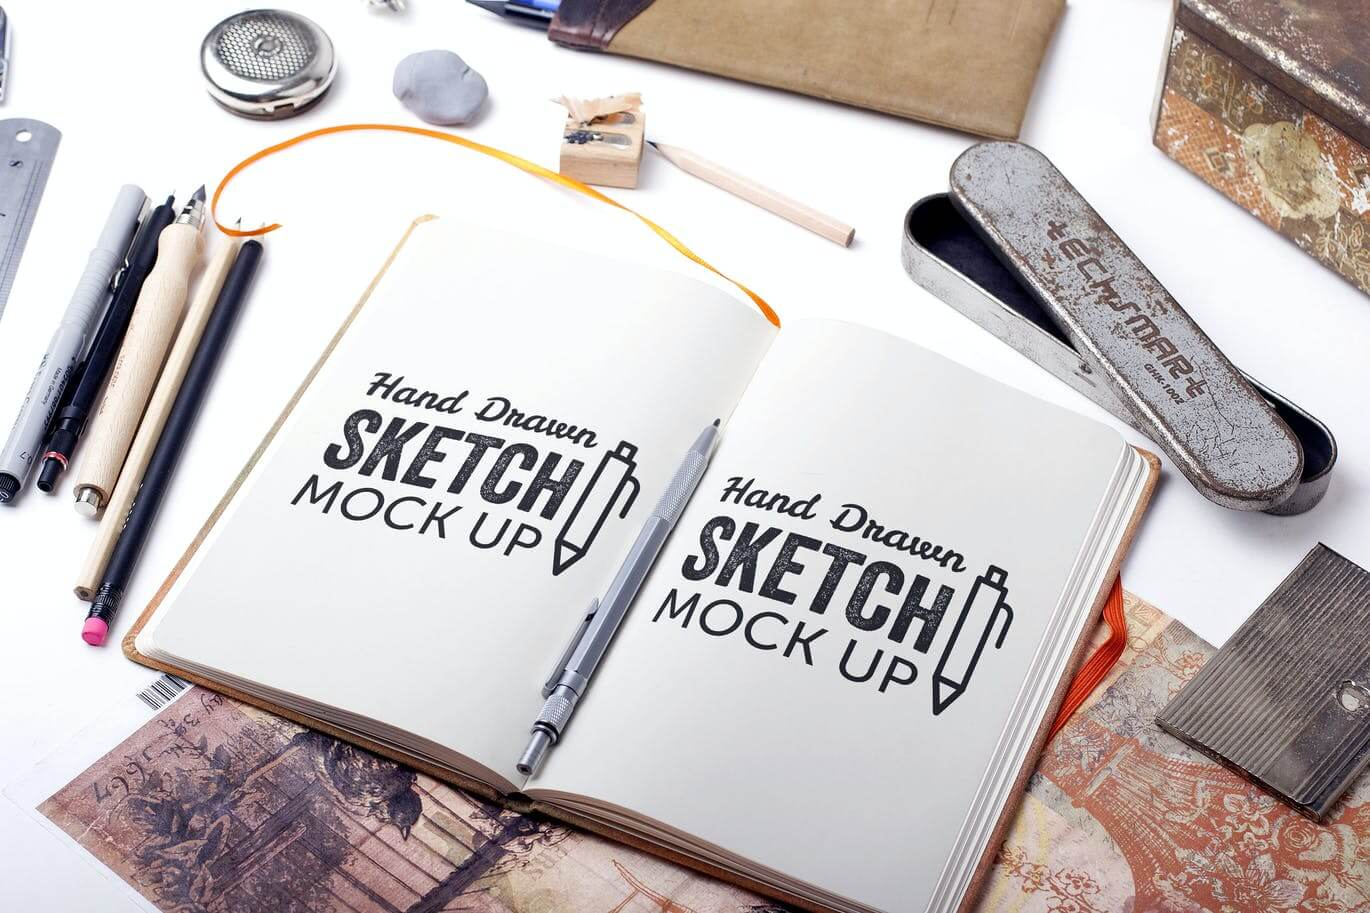 Sketch And Drawing Mockup Template #6